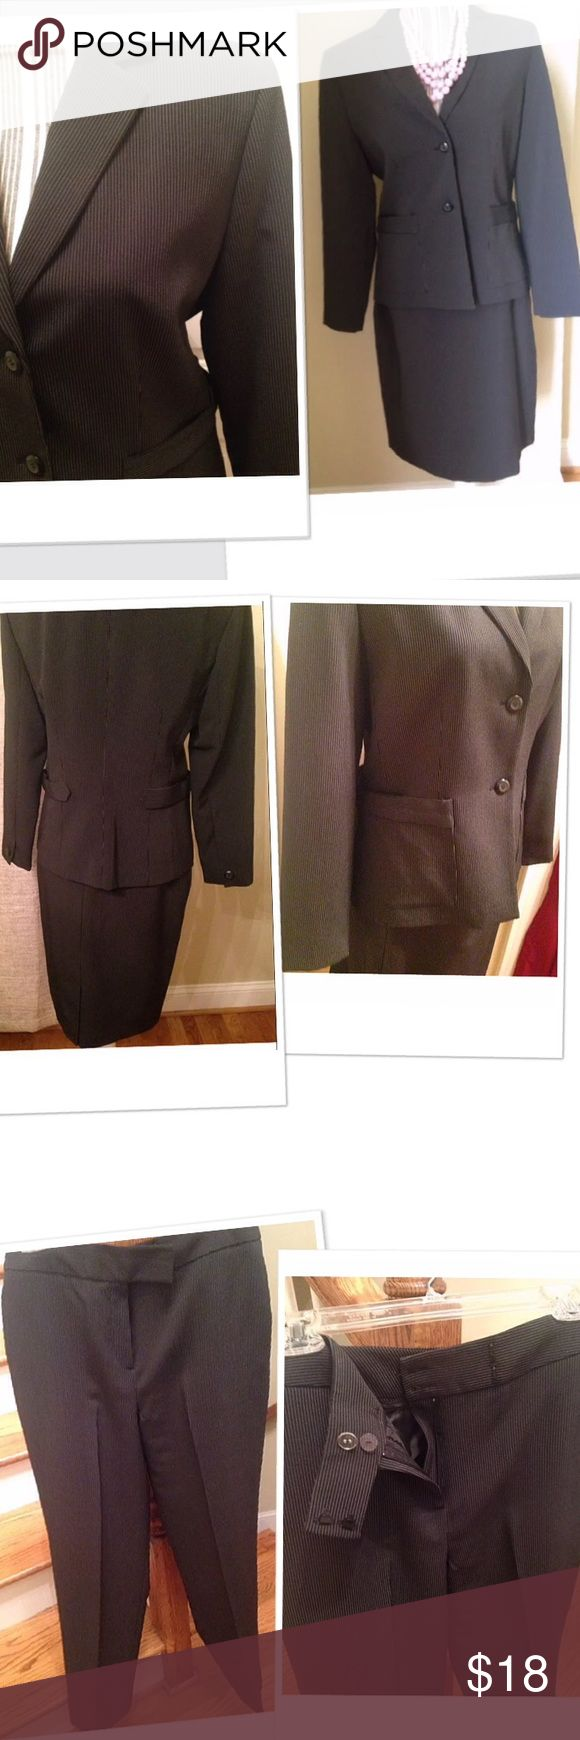 3 piece suit black pinstripes NWT This suit is brand new.  The pants and skirt  measure 30 inches in the waist and 30 inches long .  The suit is black with white pinstripes ships fast.  Comes from a smoke free and pet free home.  Thanks for viewing.. pret a porter Pants